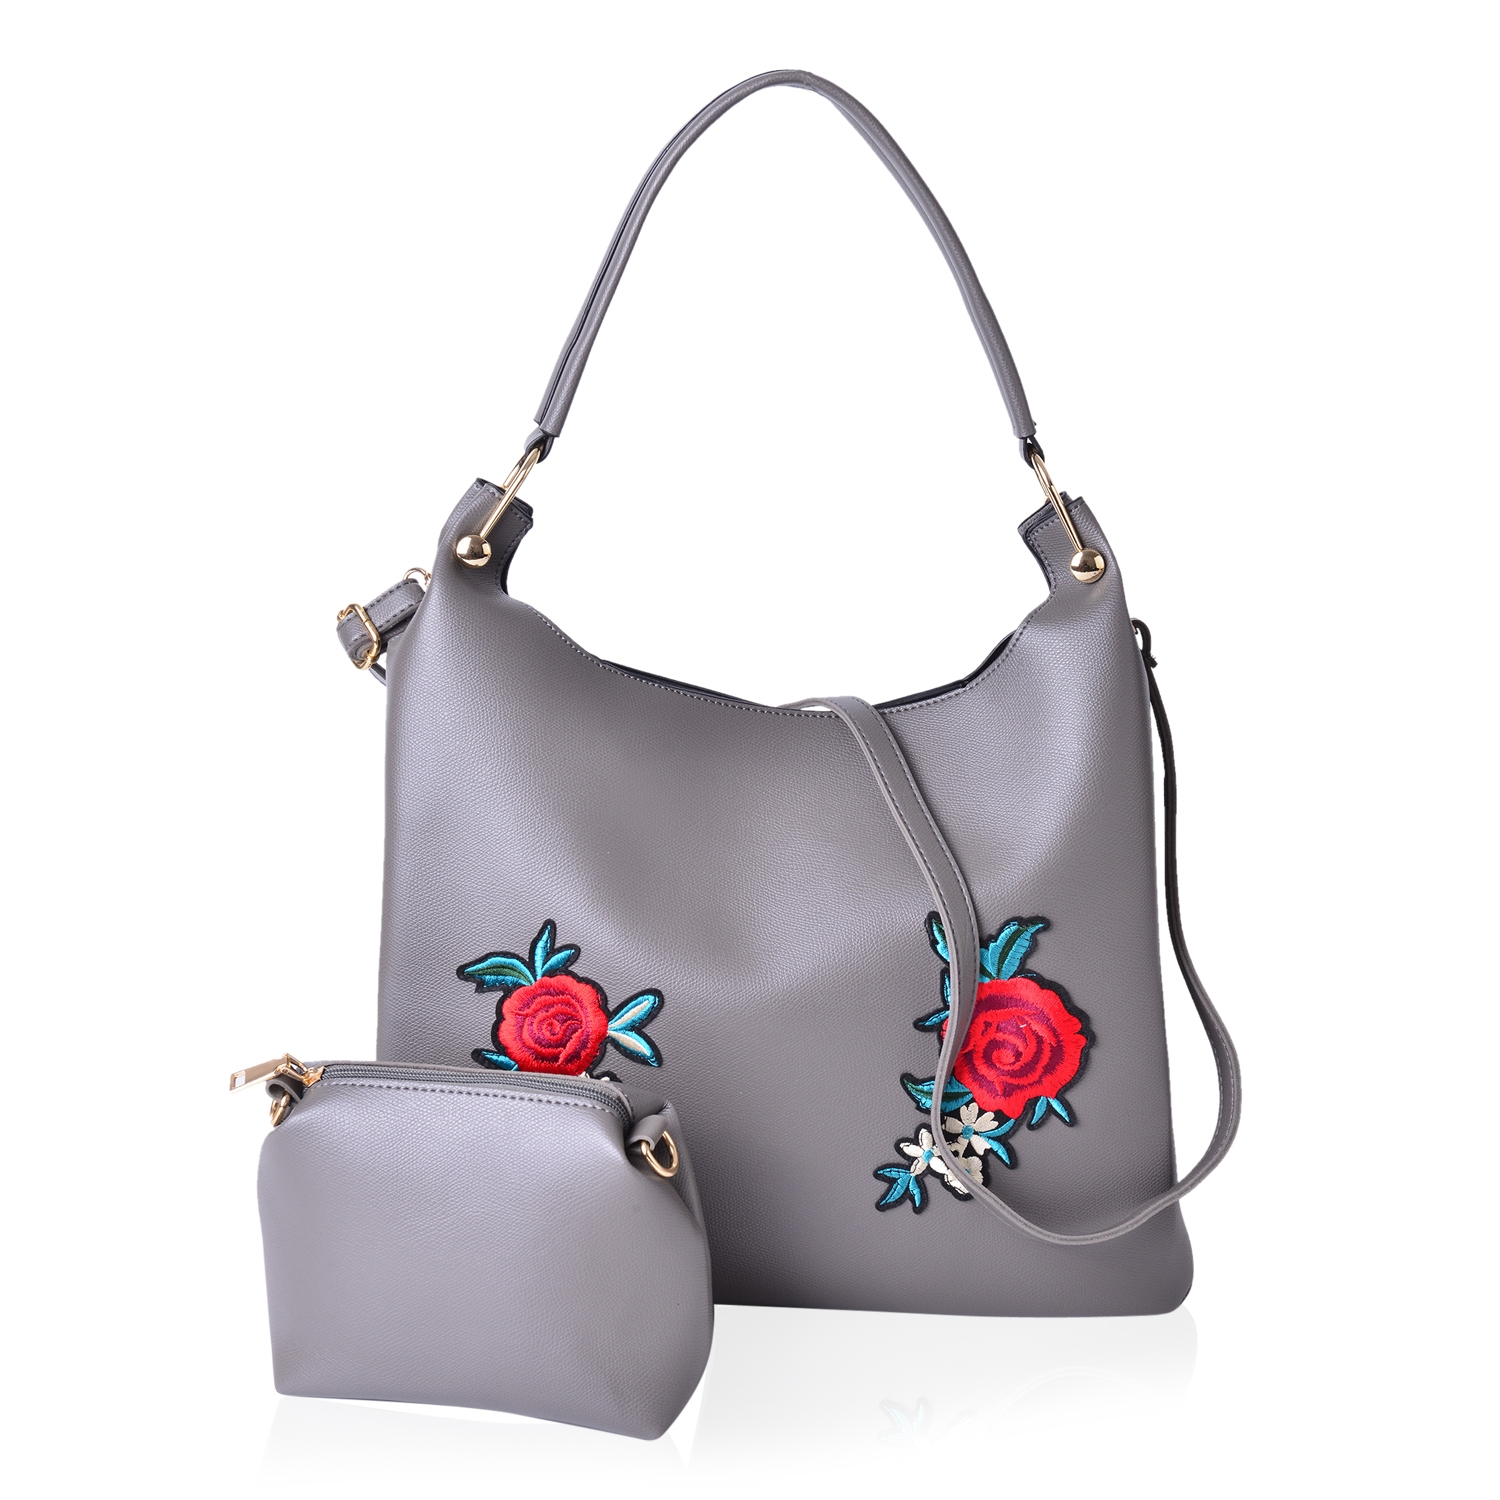 13fb9ea45f2 Gray Faux Leather Eye-Catching Floral Embroidery Tote Bag (15x5x12 in) with  Matching Pouch (9x3x6 in) | Shop LC